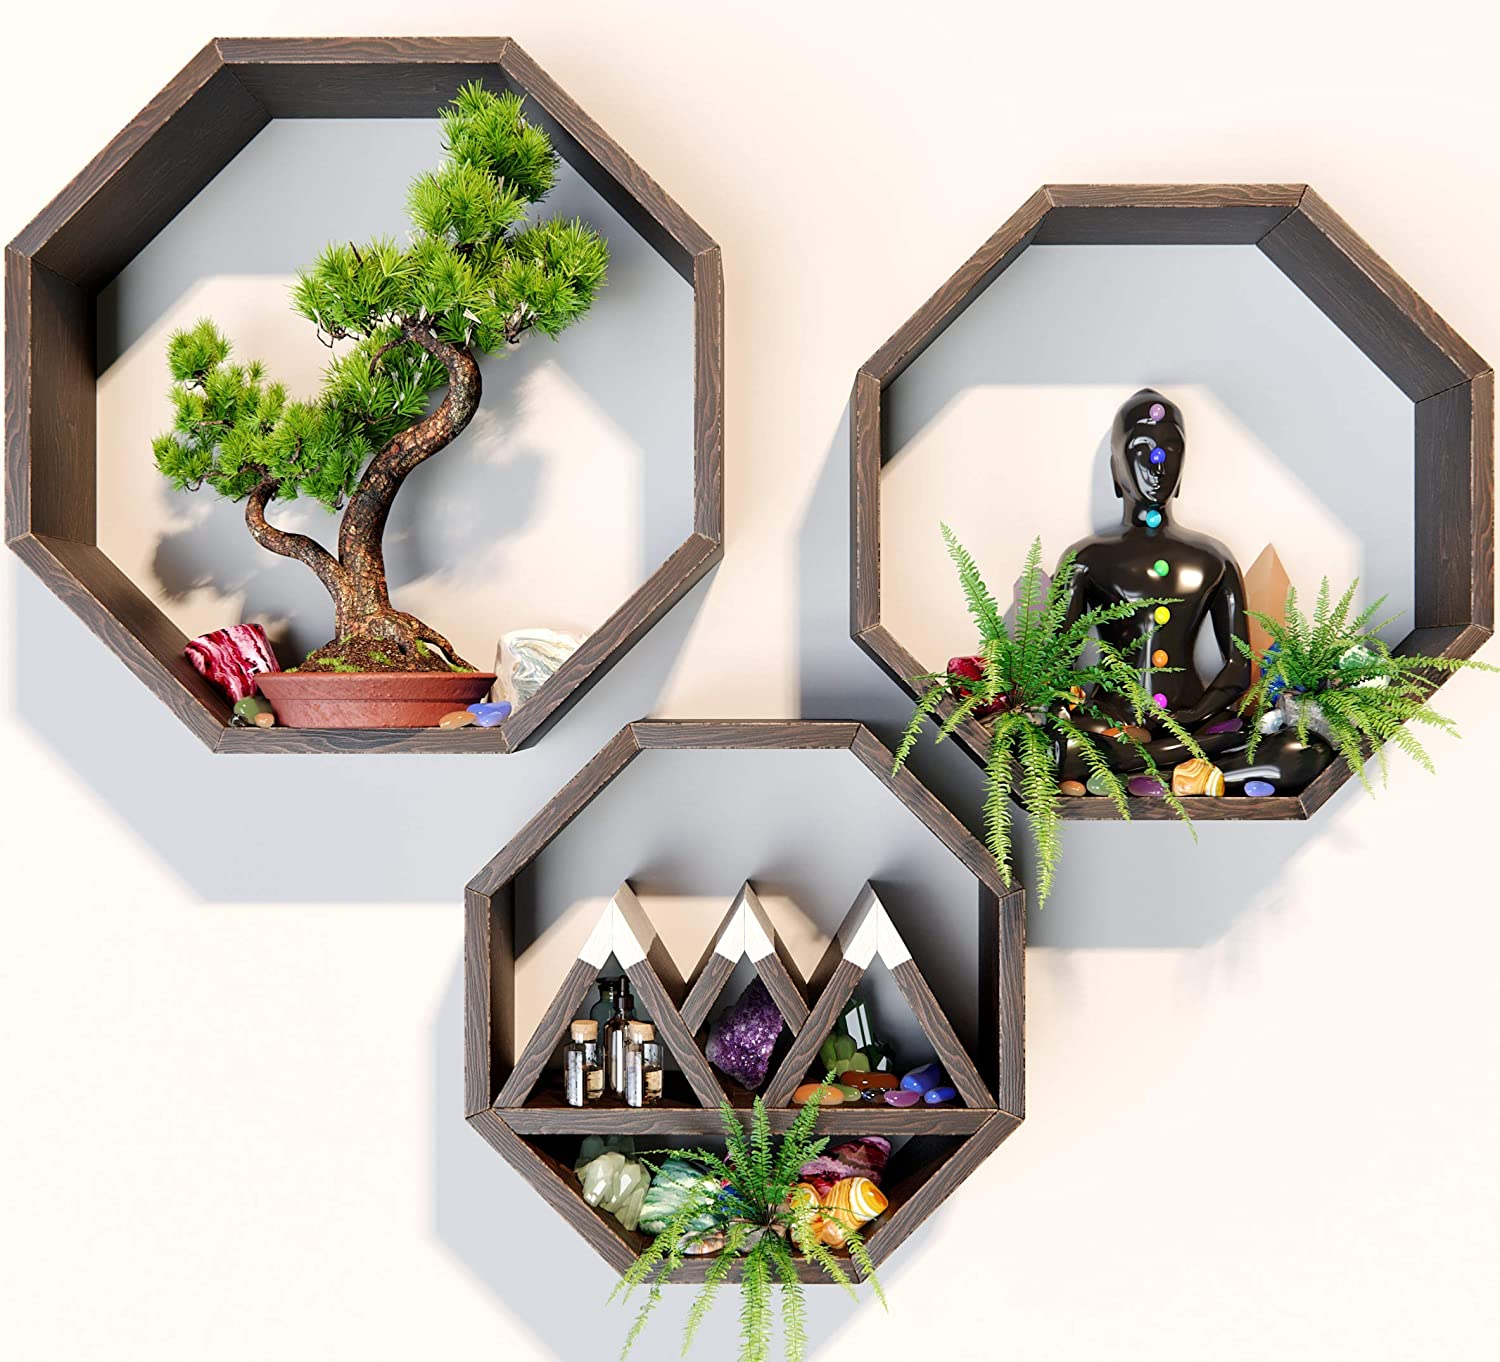 AMERICA EMPIRE Octagon Shelves for Wall 【Set of 3 】  Crystal Shelf Display for Stones. Octagon Wall Shelves   Geometric Shelf Can Be Used as a Crystal Holder, Crystal Display Shelf Boho Shelf Decor